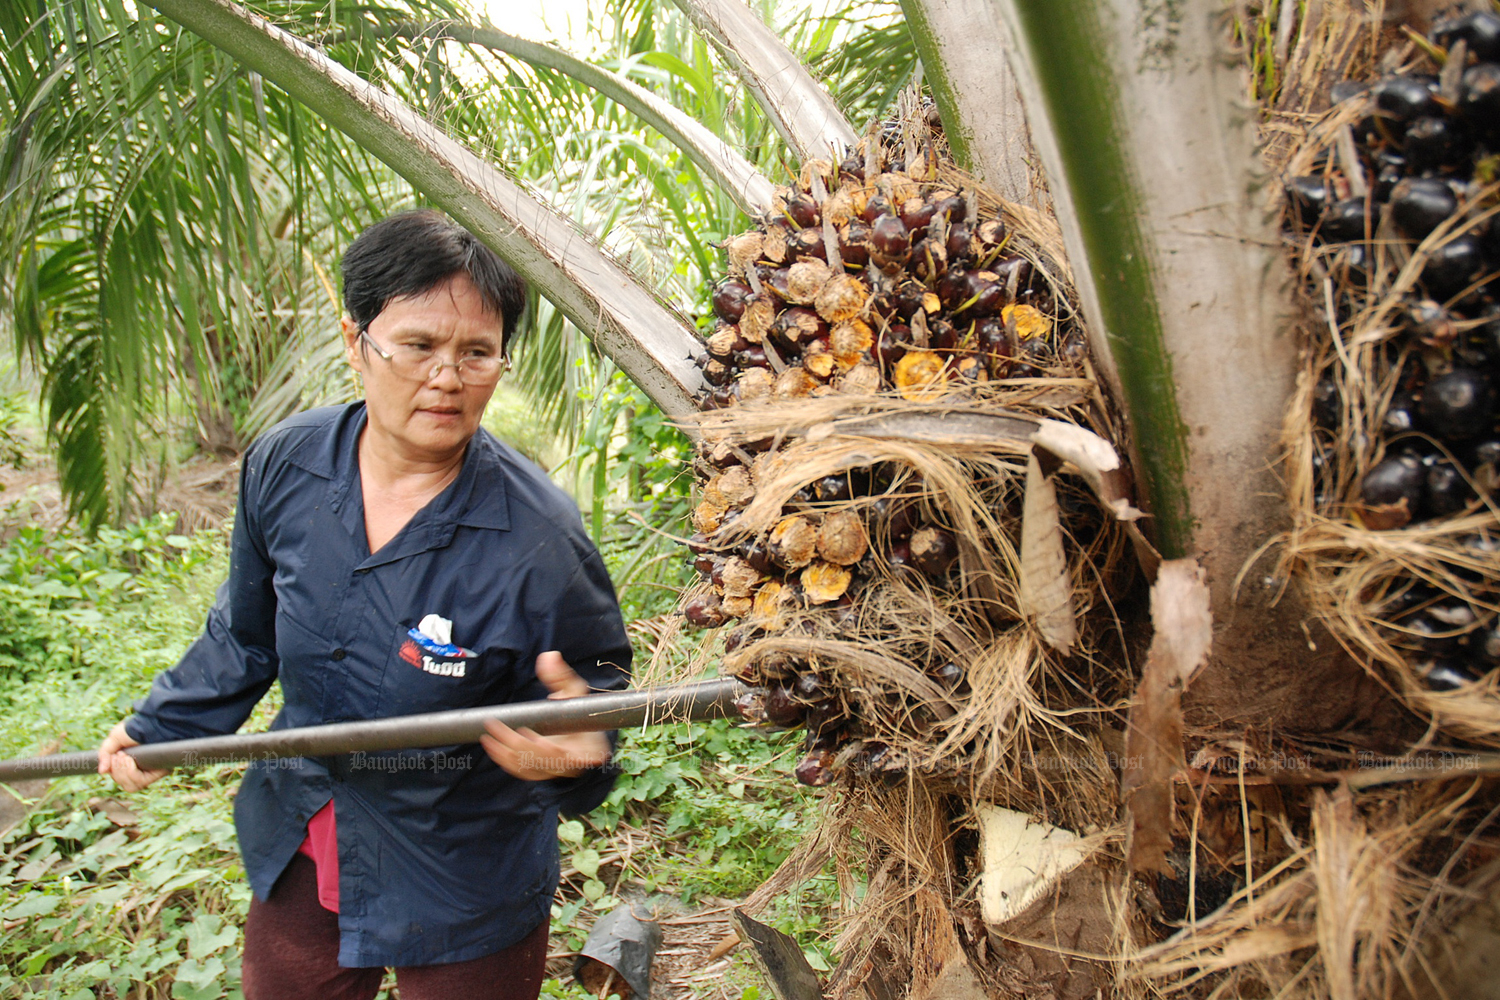 The price of domestic fresh palm nuts hit a two-decade low in April at 1.60-1.80 baht per kilogramme.(Bangkok Post photo)